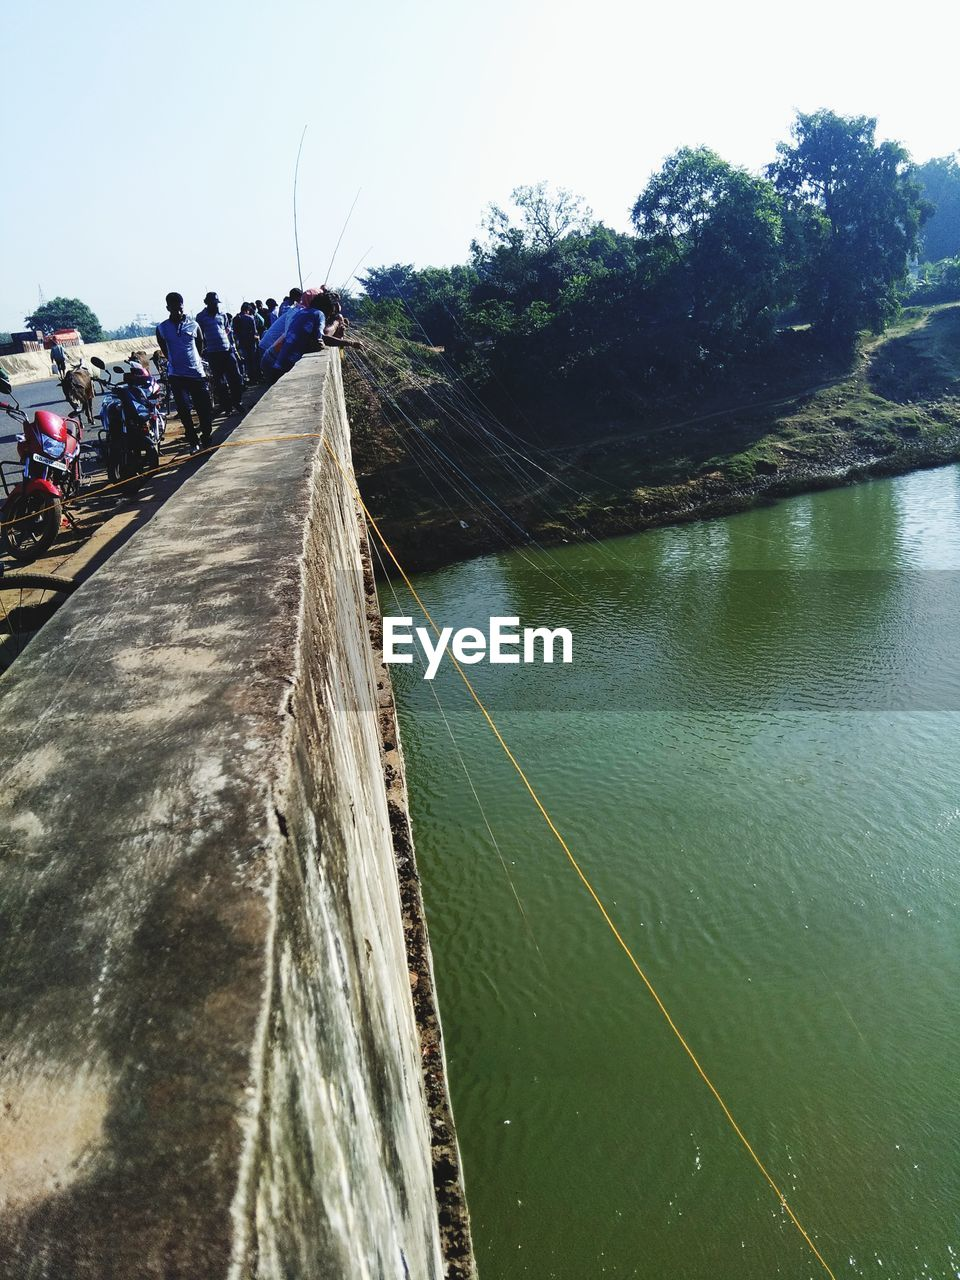 water, sky, plant, tree, nature, group of people, day, real people, river, transportation, direction, men, bridge, built structure, architecture, lifestyles, incidental people, the way forward, connection, outdoors